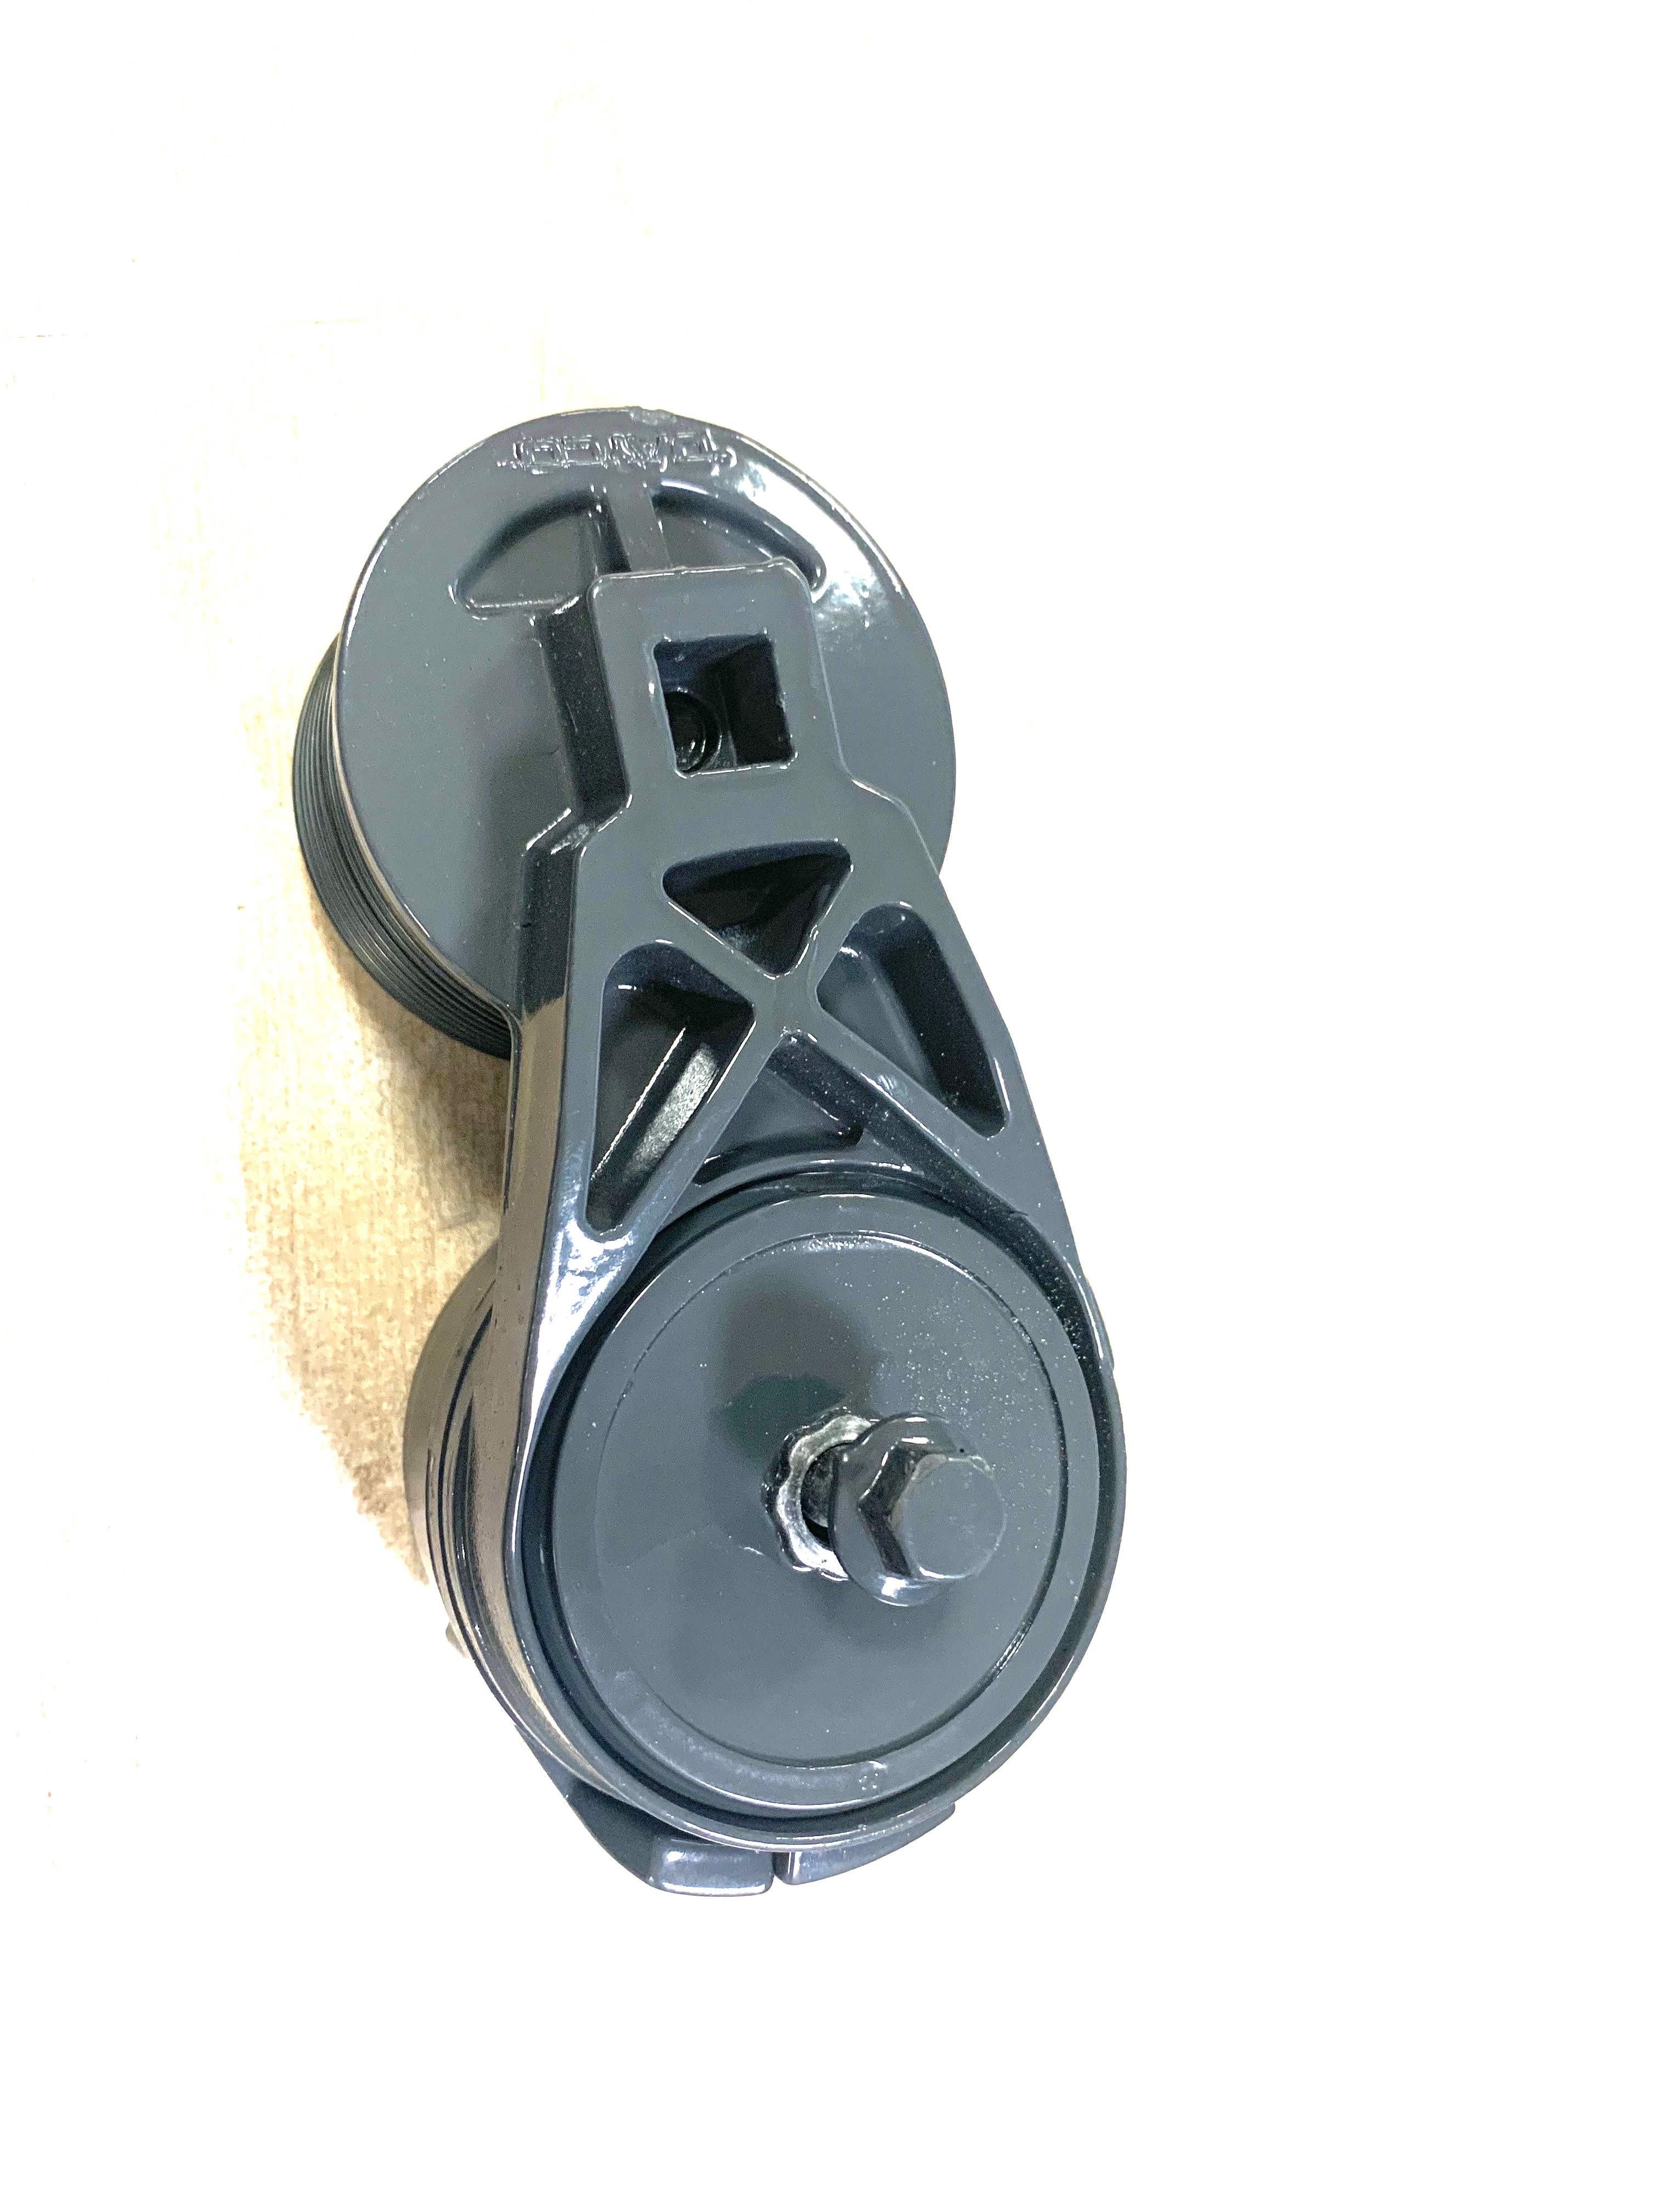 TP4U - RECYCLED NEW DAF TENSIONER GEAR PULLEY FOR LF EURO PX5 ENGINES